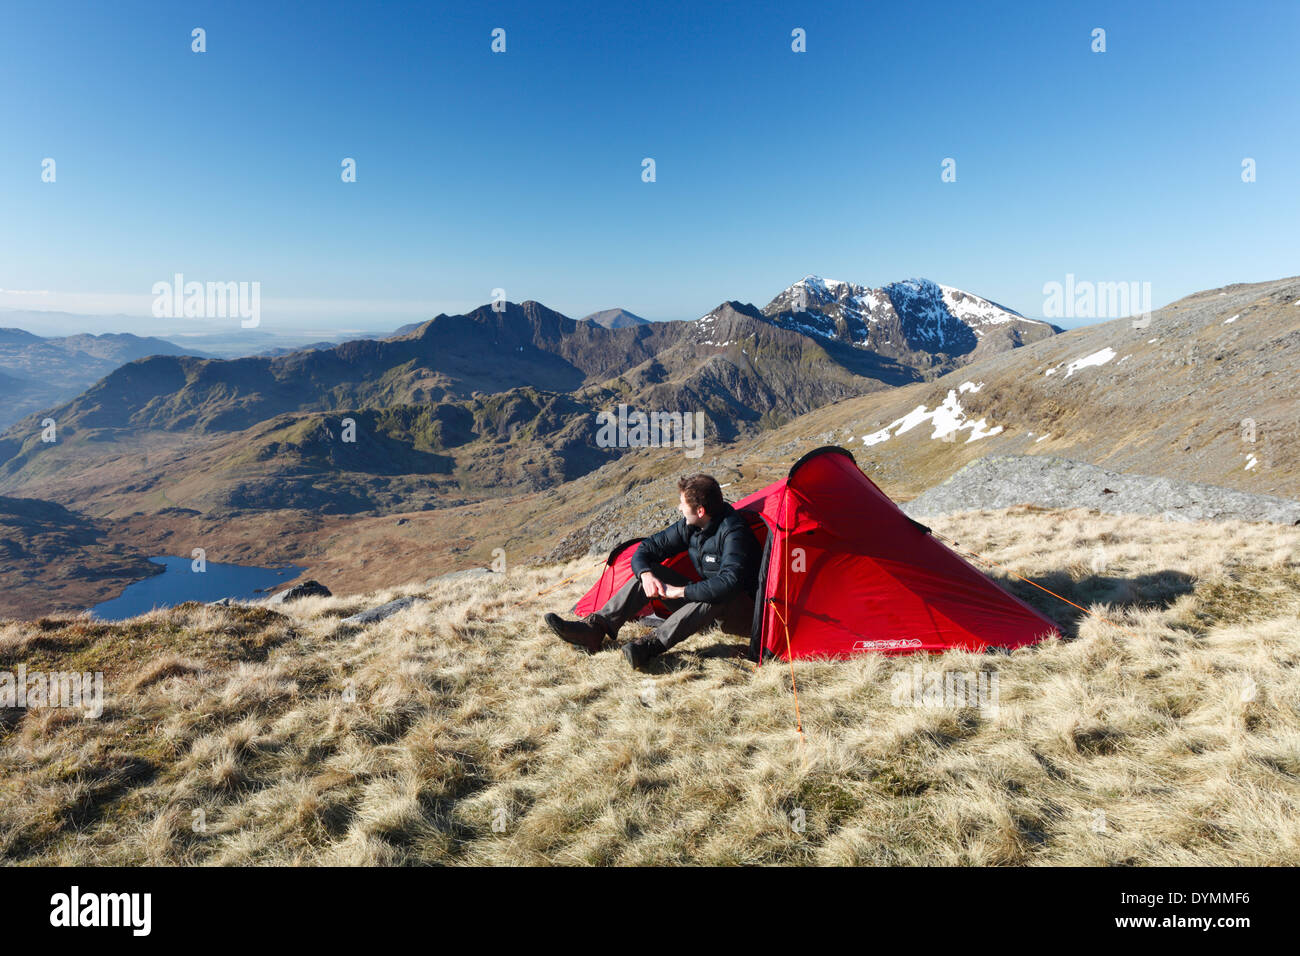 Wild Camping on Glyder Fach with Mt Snowdon in the Distance. Snowdonia National Park, Wales, UK. - Stock Image